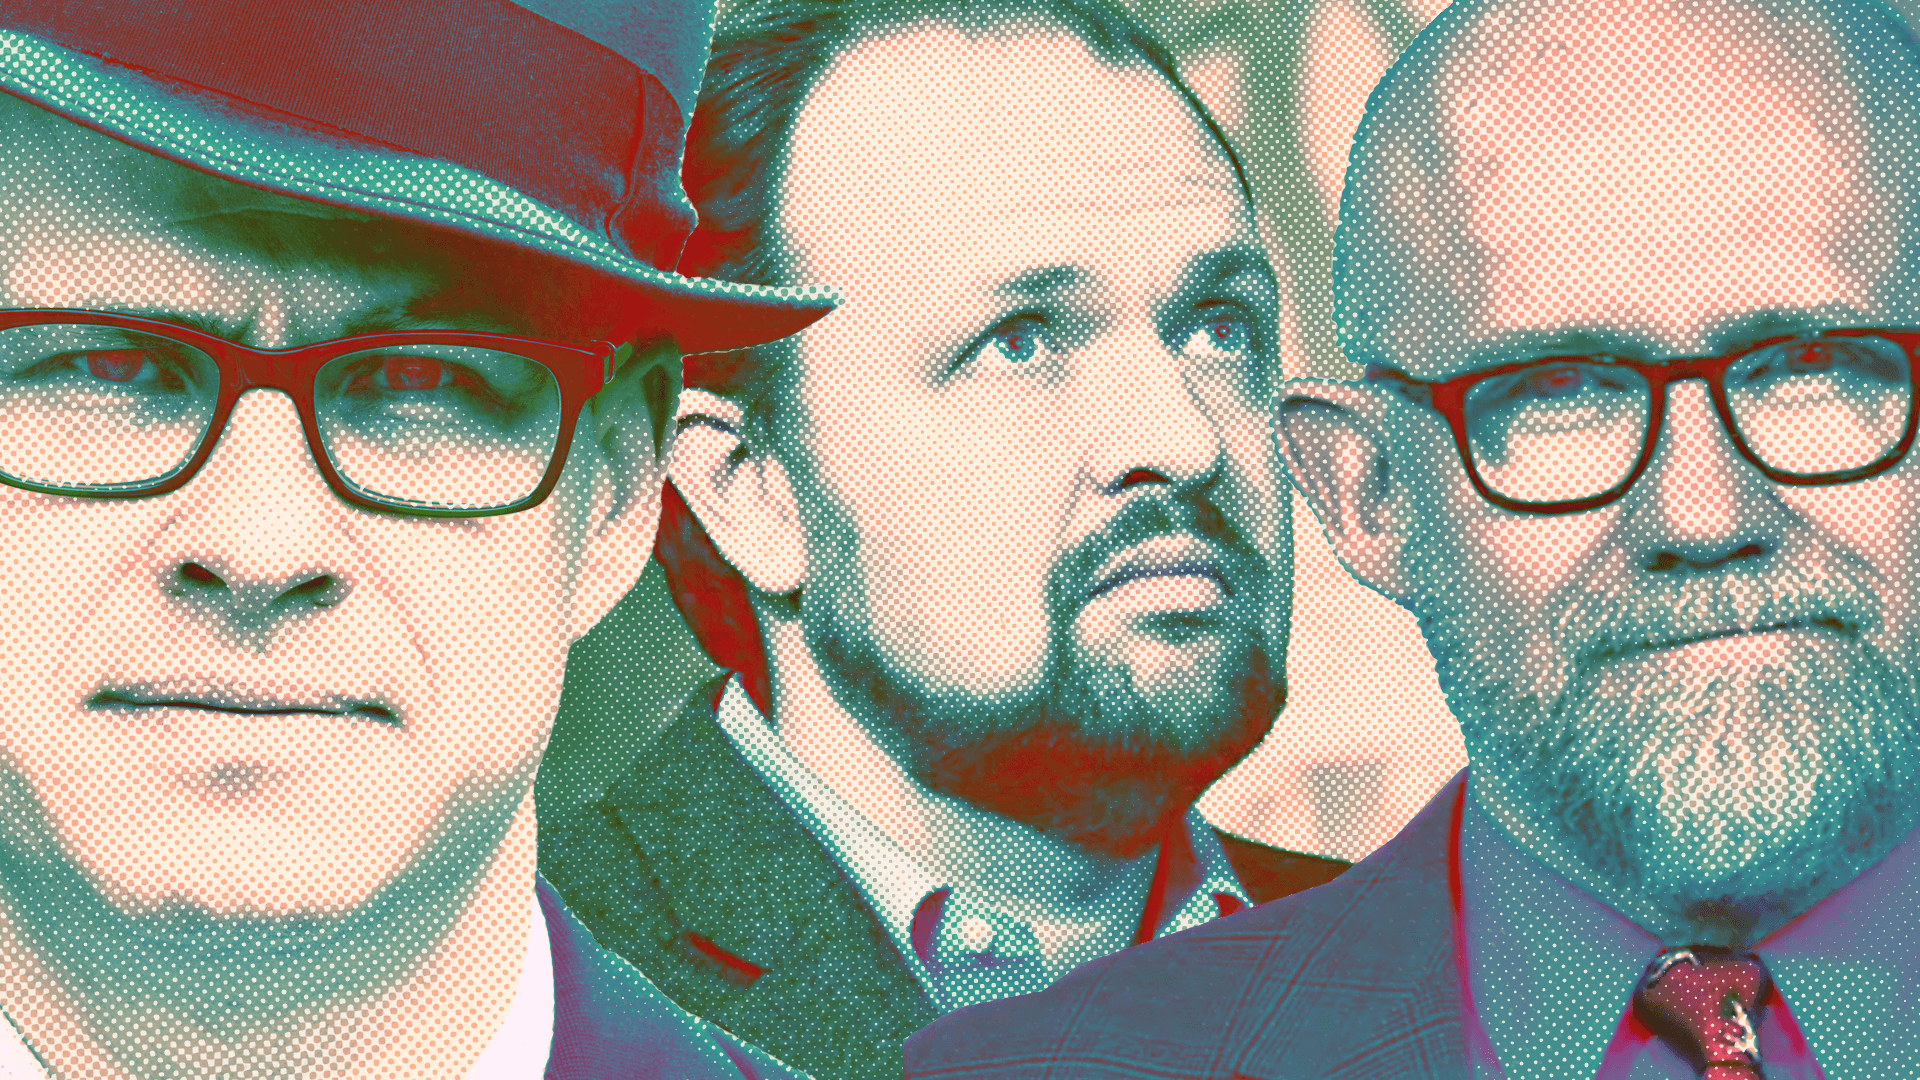 Max Boot, Ross Douthat, and Rick Wilson